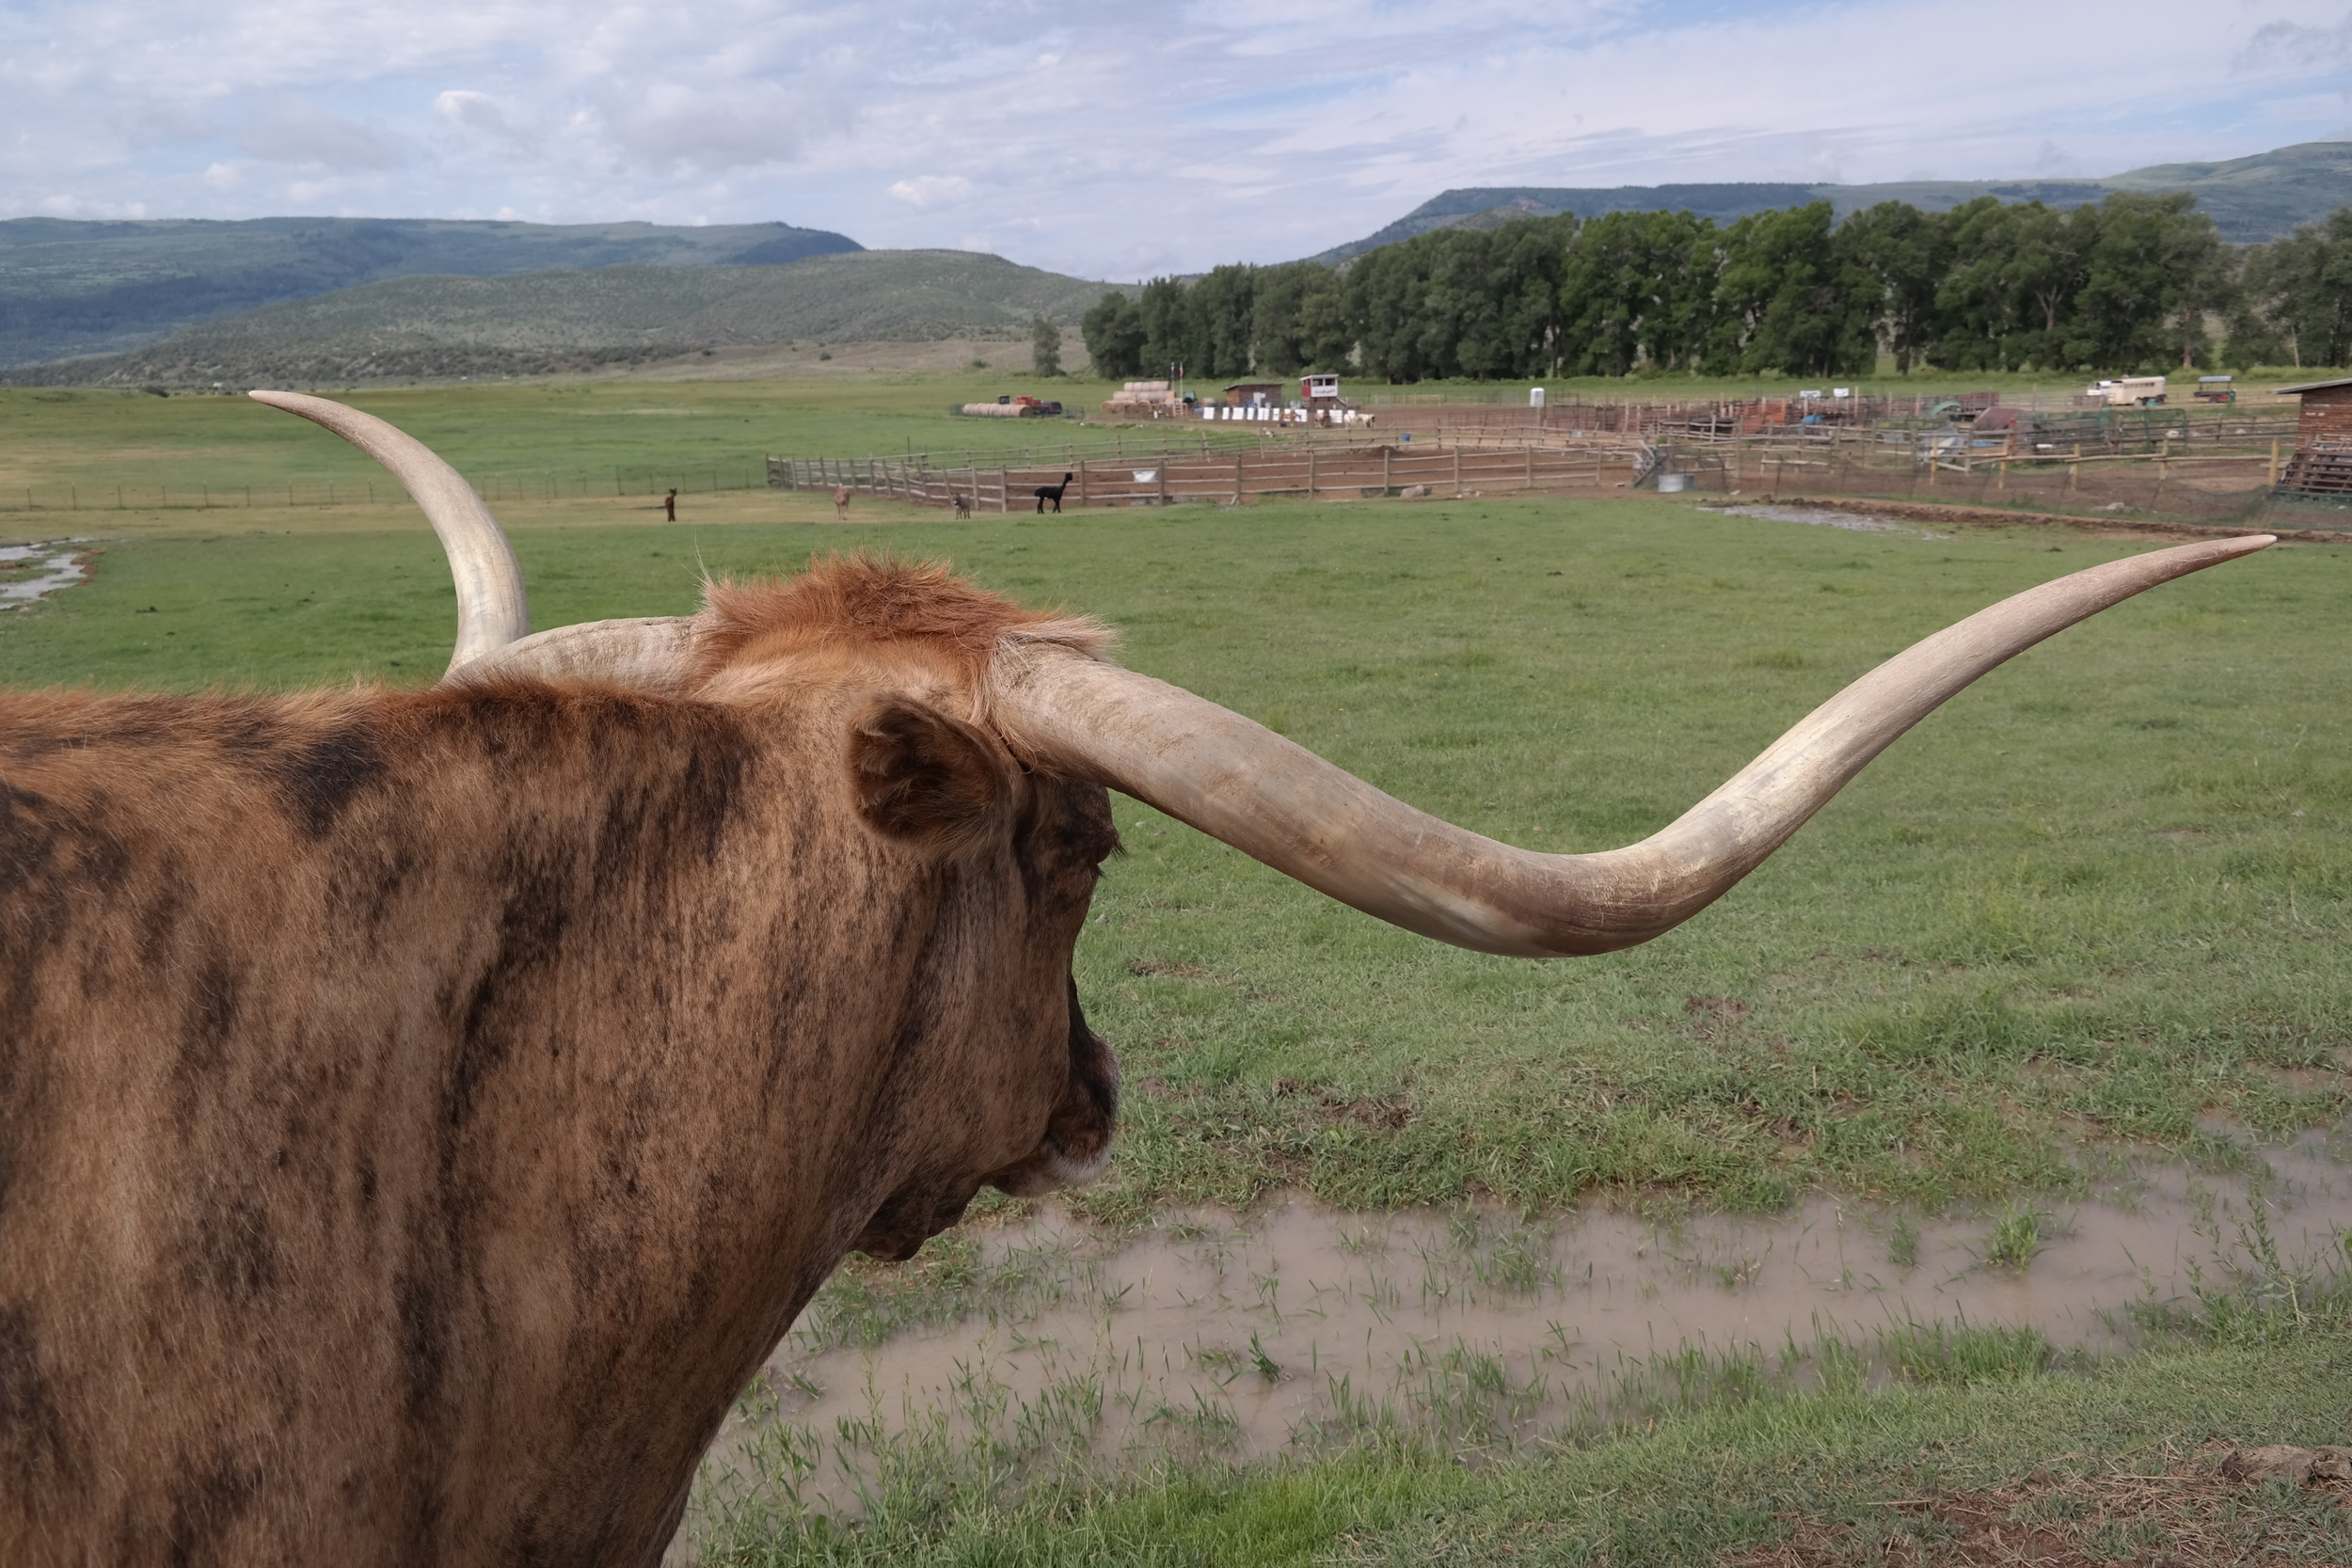 Big Blue, the rescue longhorn bull hanging with the alpacas and sheep